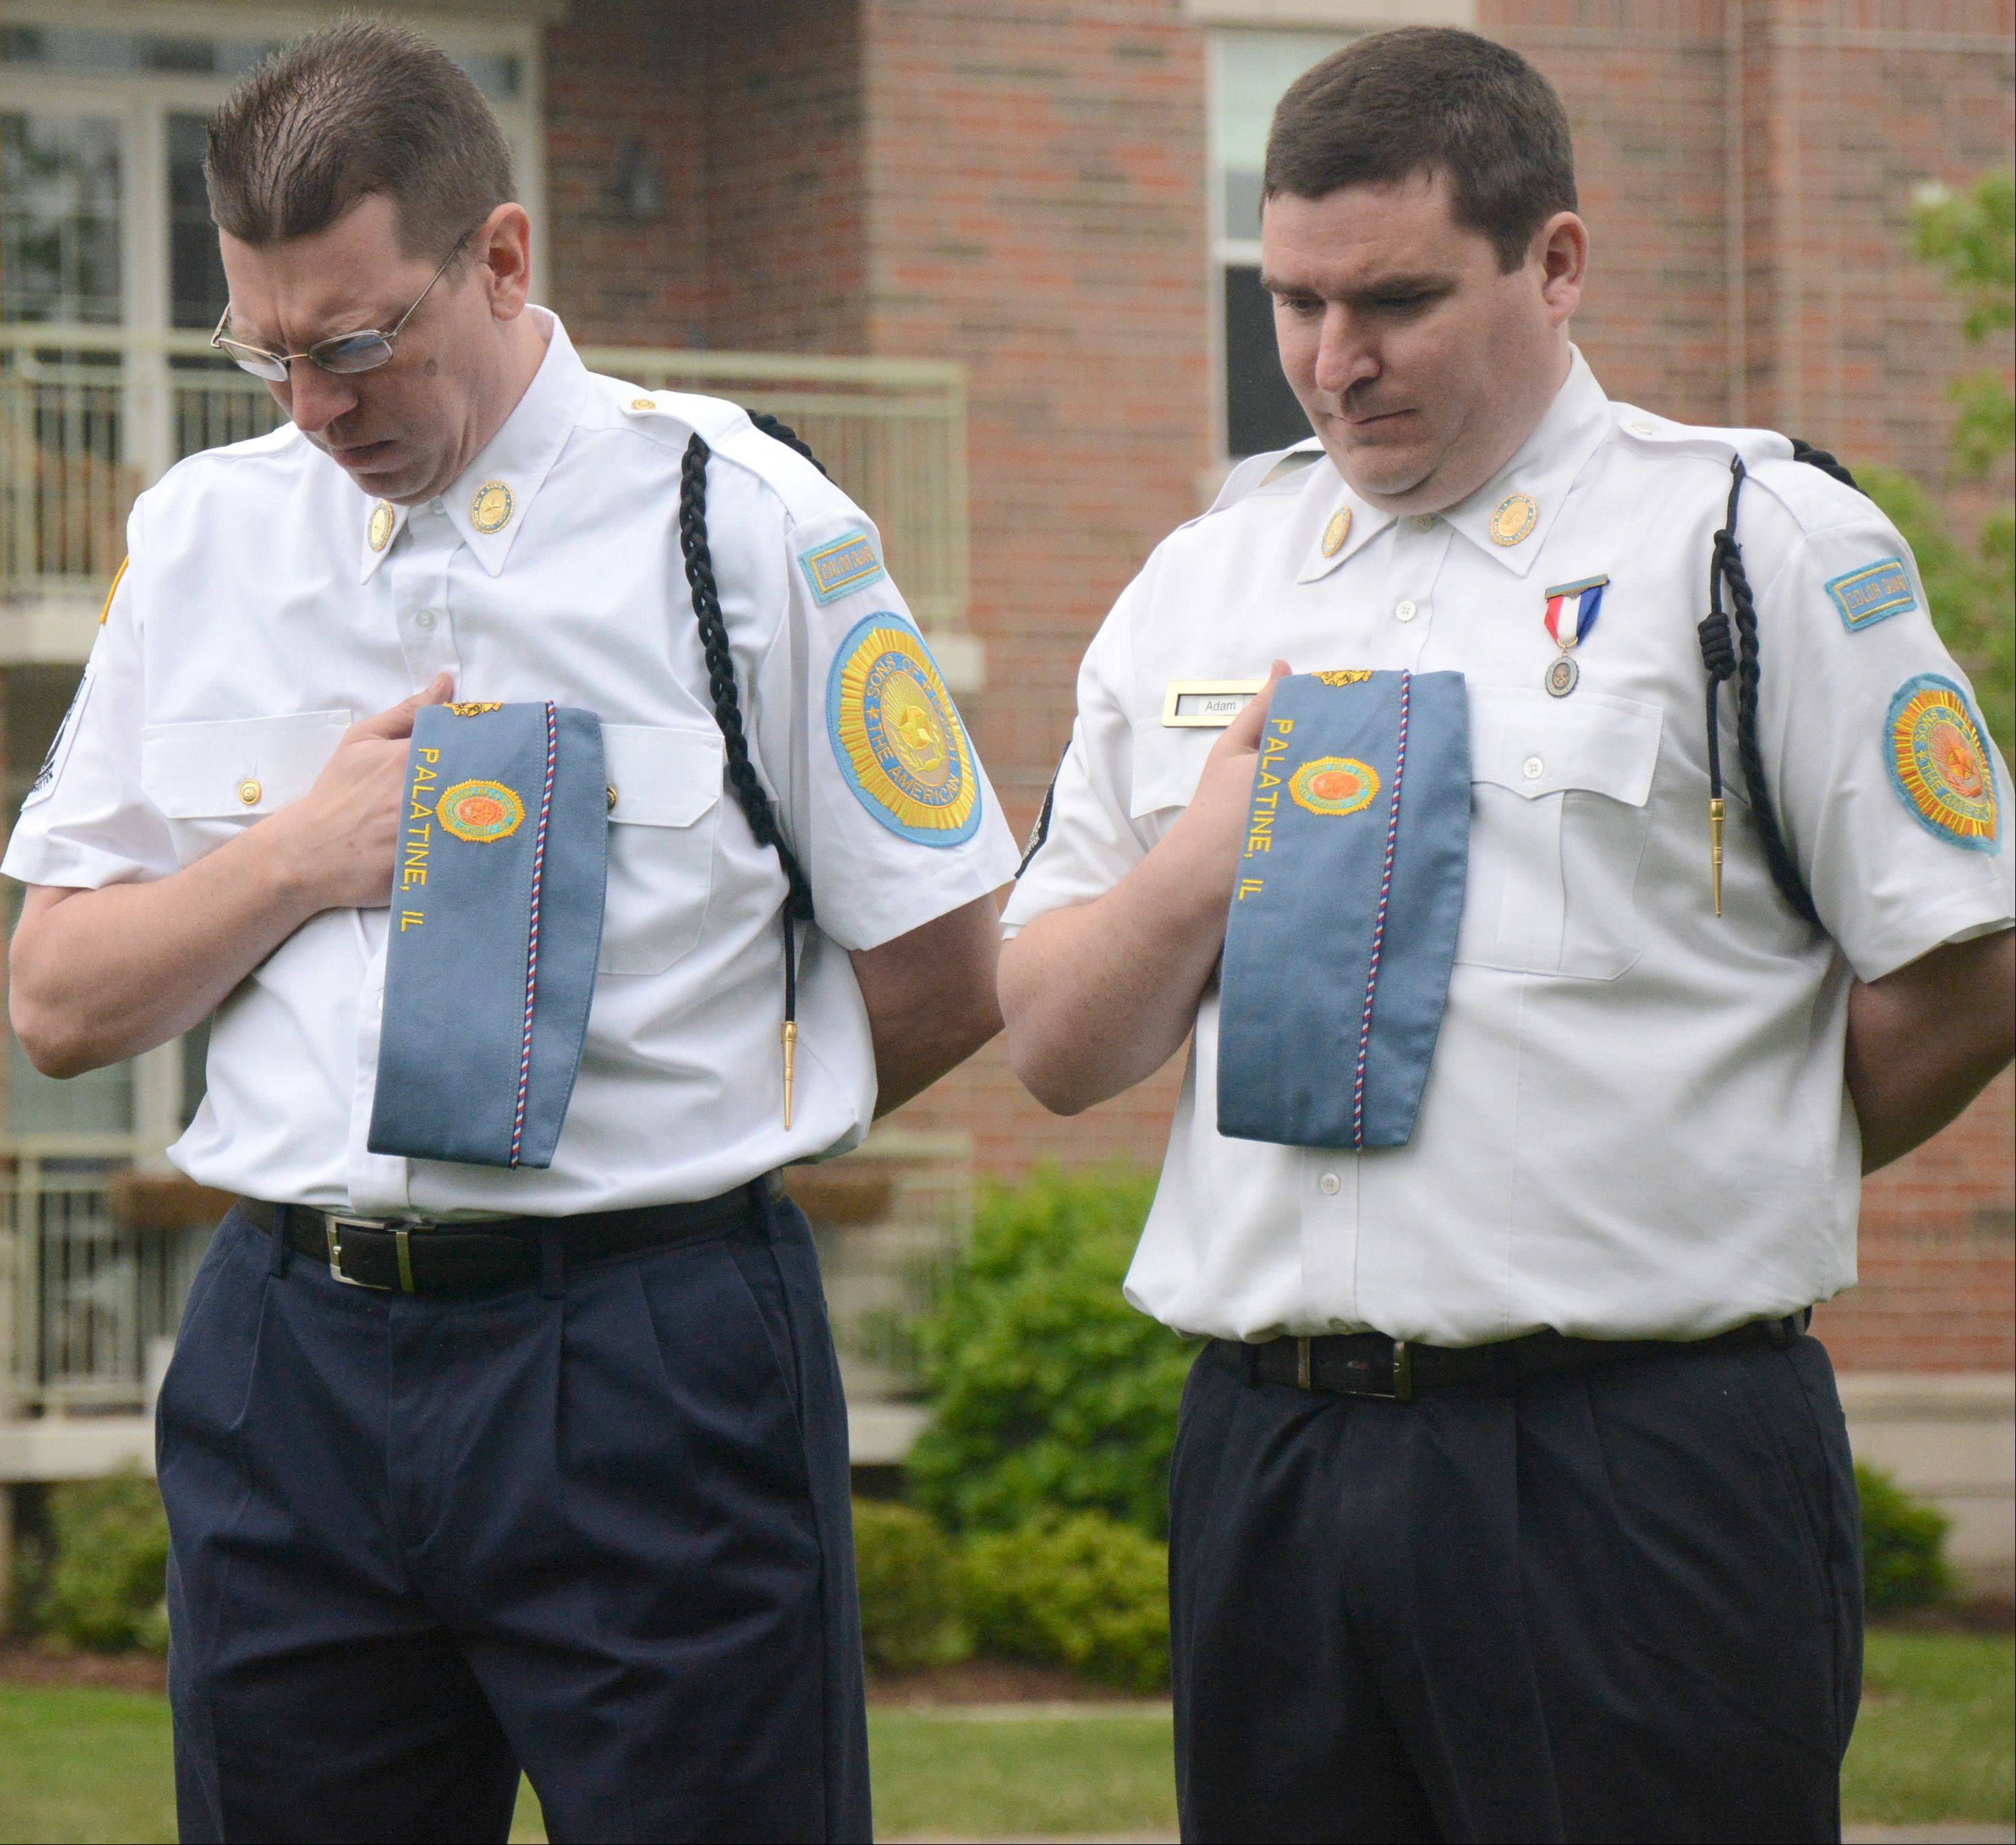 Sons of the American Legion Squadron 690 members Jason Foltyn, left, and Adam Anderson bow their heads during the invocation at the Palatine Memorial Day ceremony on Monday.